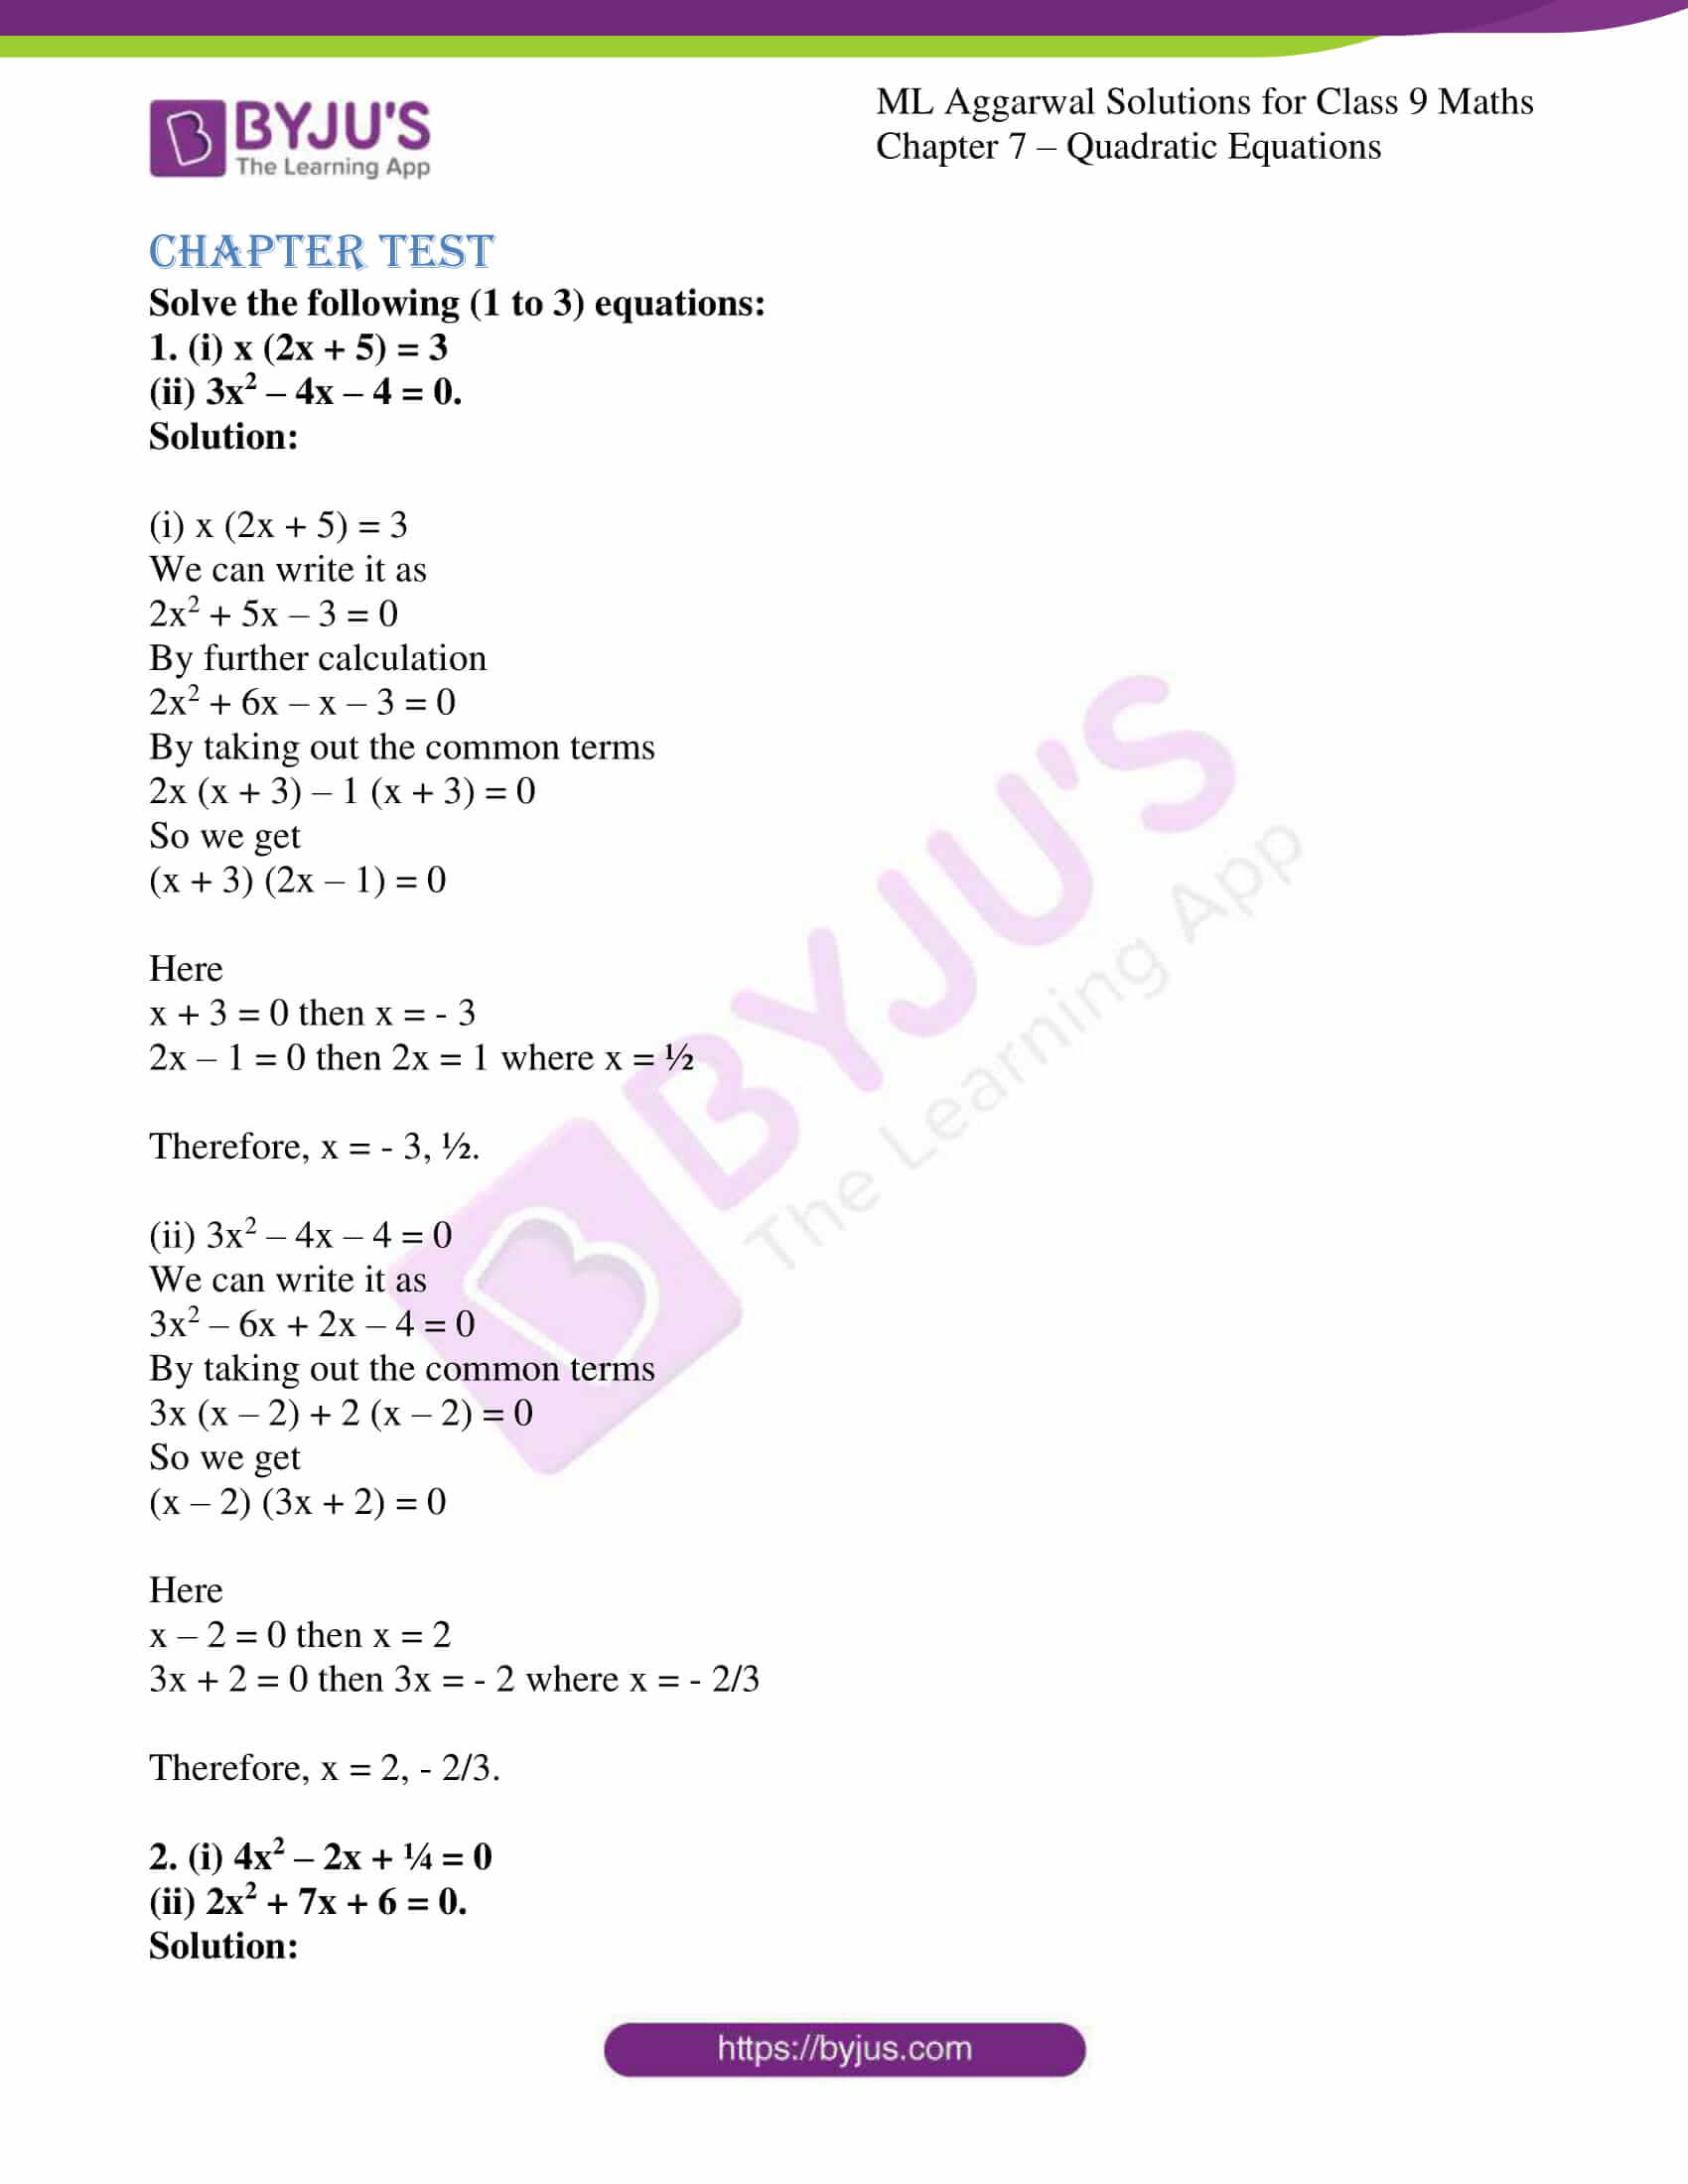 ml aggarwal solutions for class 9 maths chapter 7 11